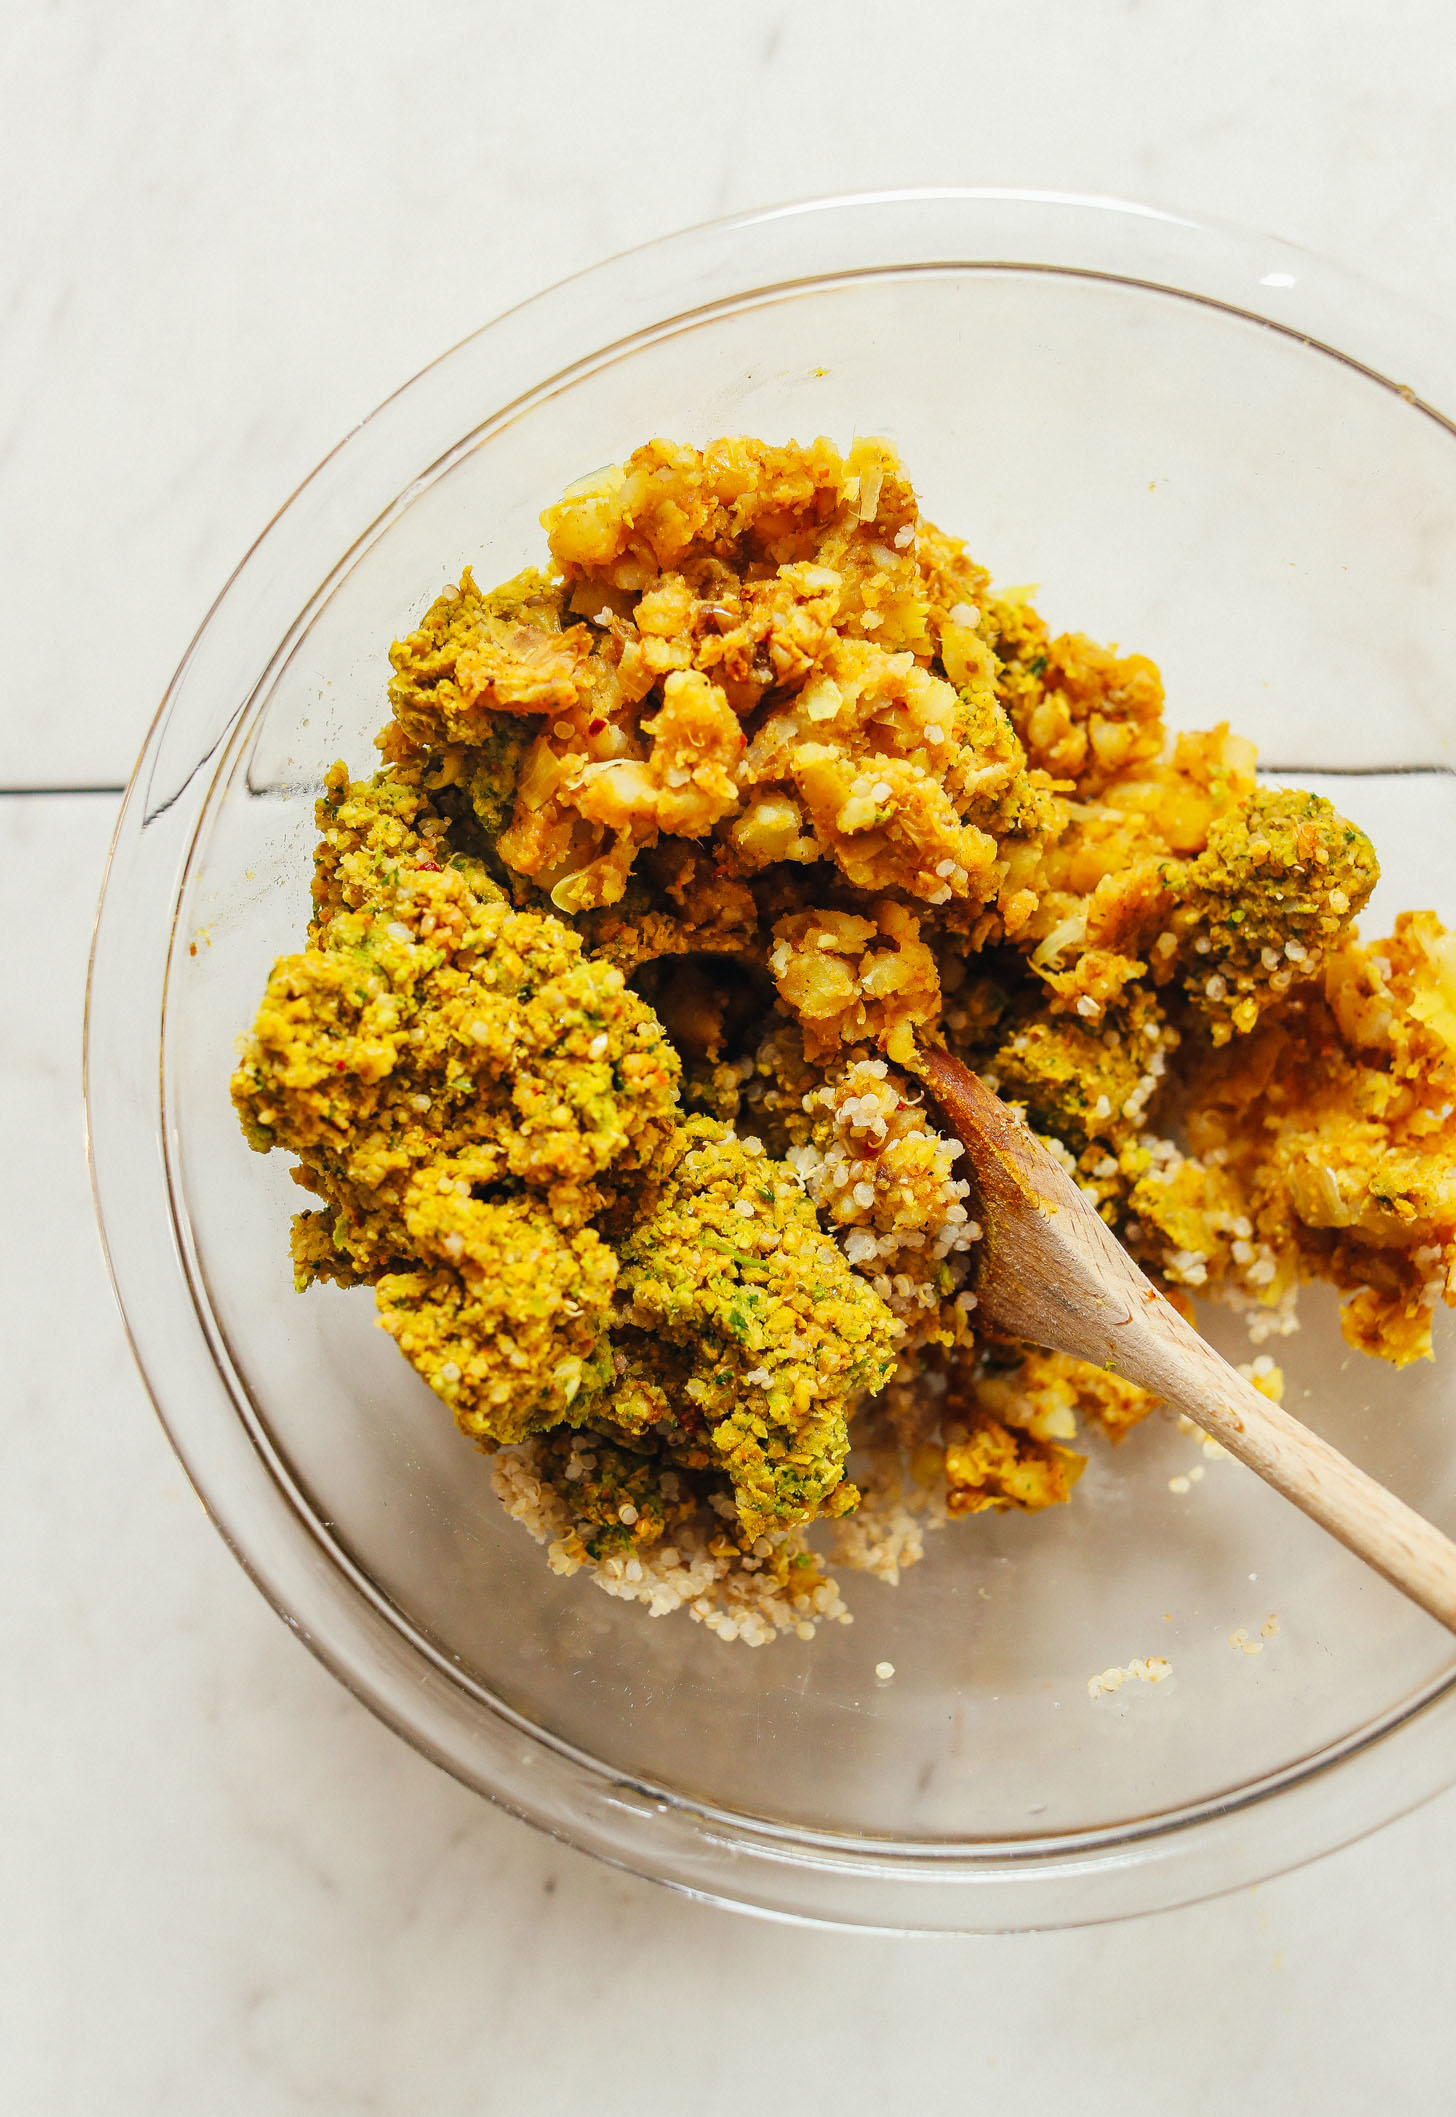 Stirring together ingredients for homemade vegan Curried Chickpea Burgers